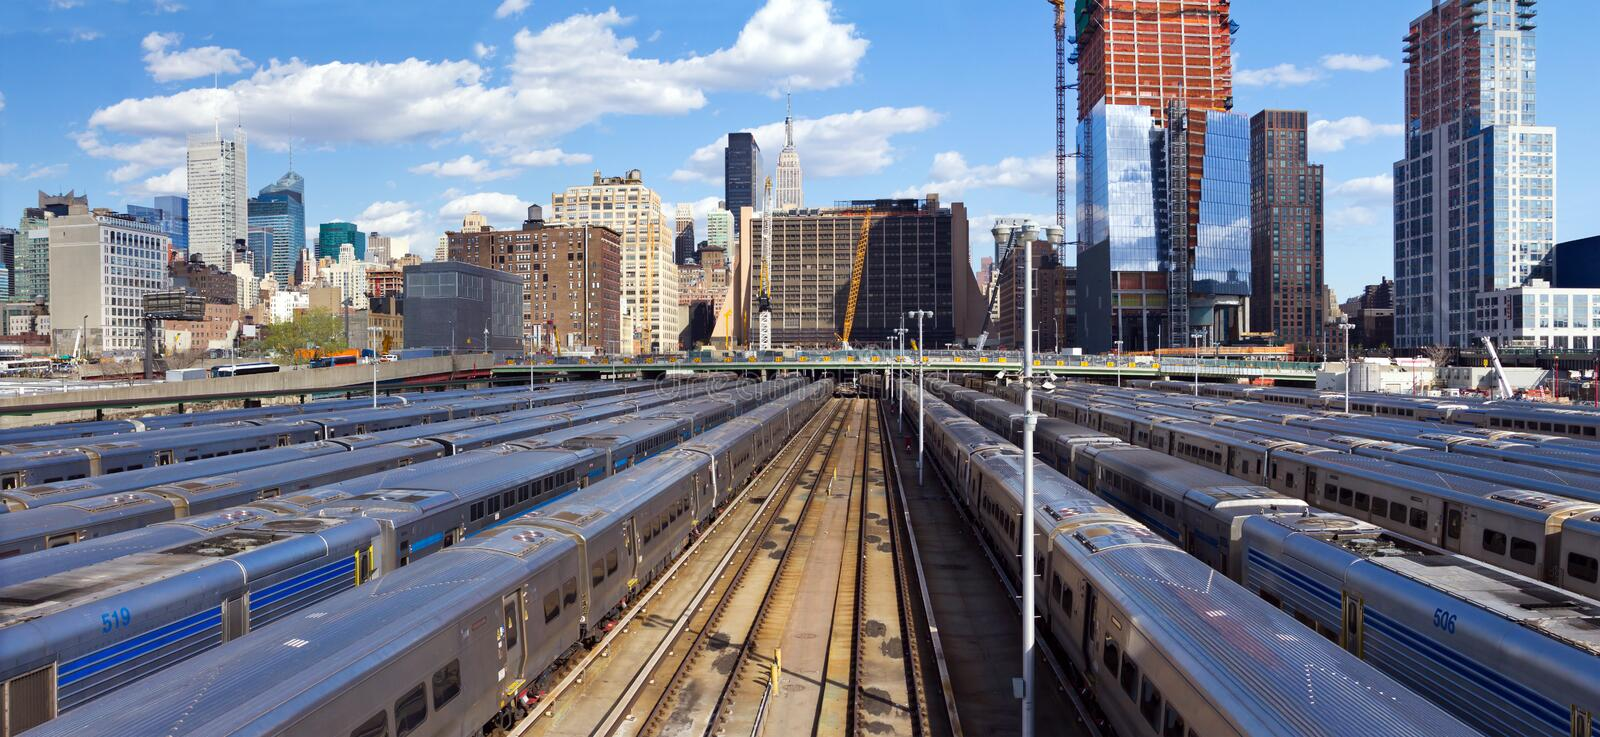 Hudson Yards train station with the Midtown Manhattan skyline in the background. Panoramic view of Hudson Yards train station with the Midtown Manhattan skyline royalty free stock photography